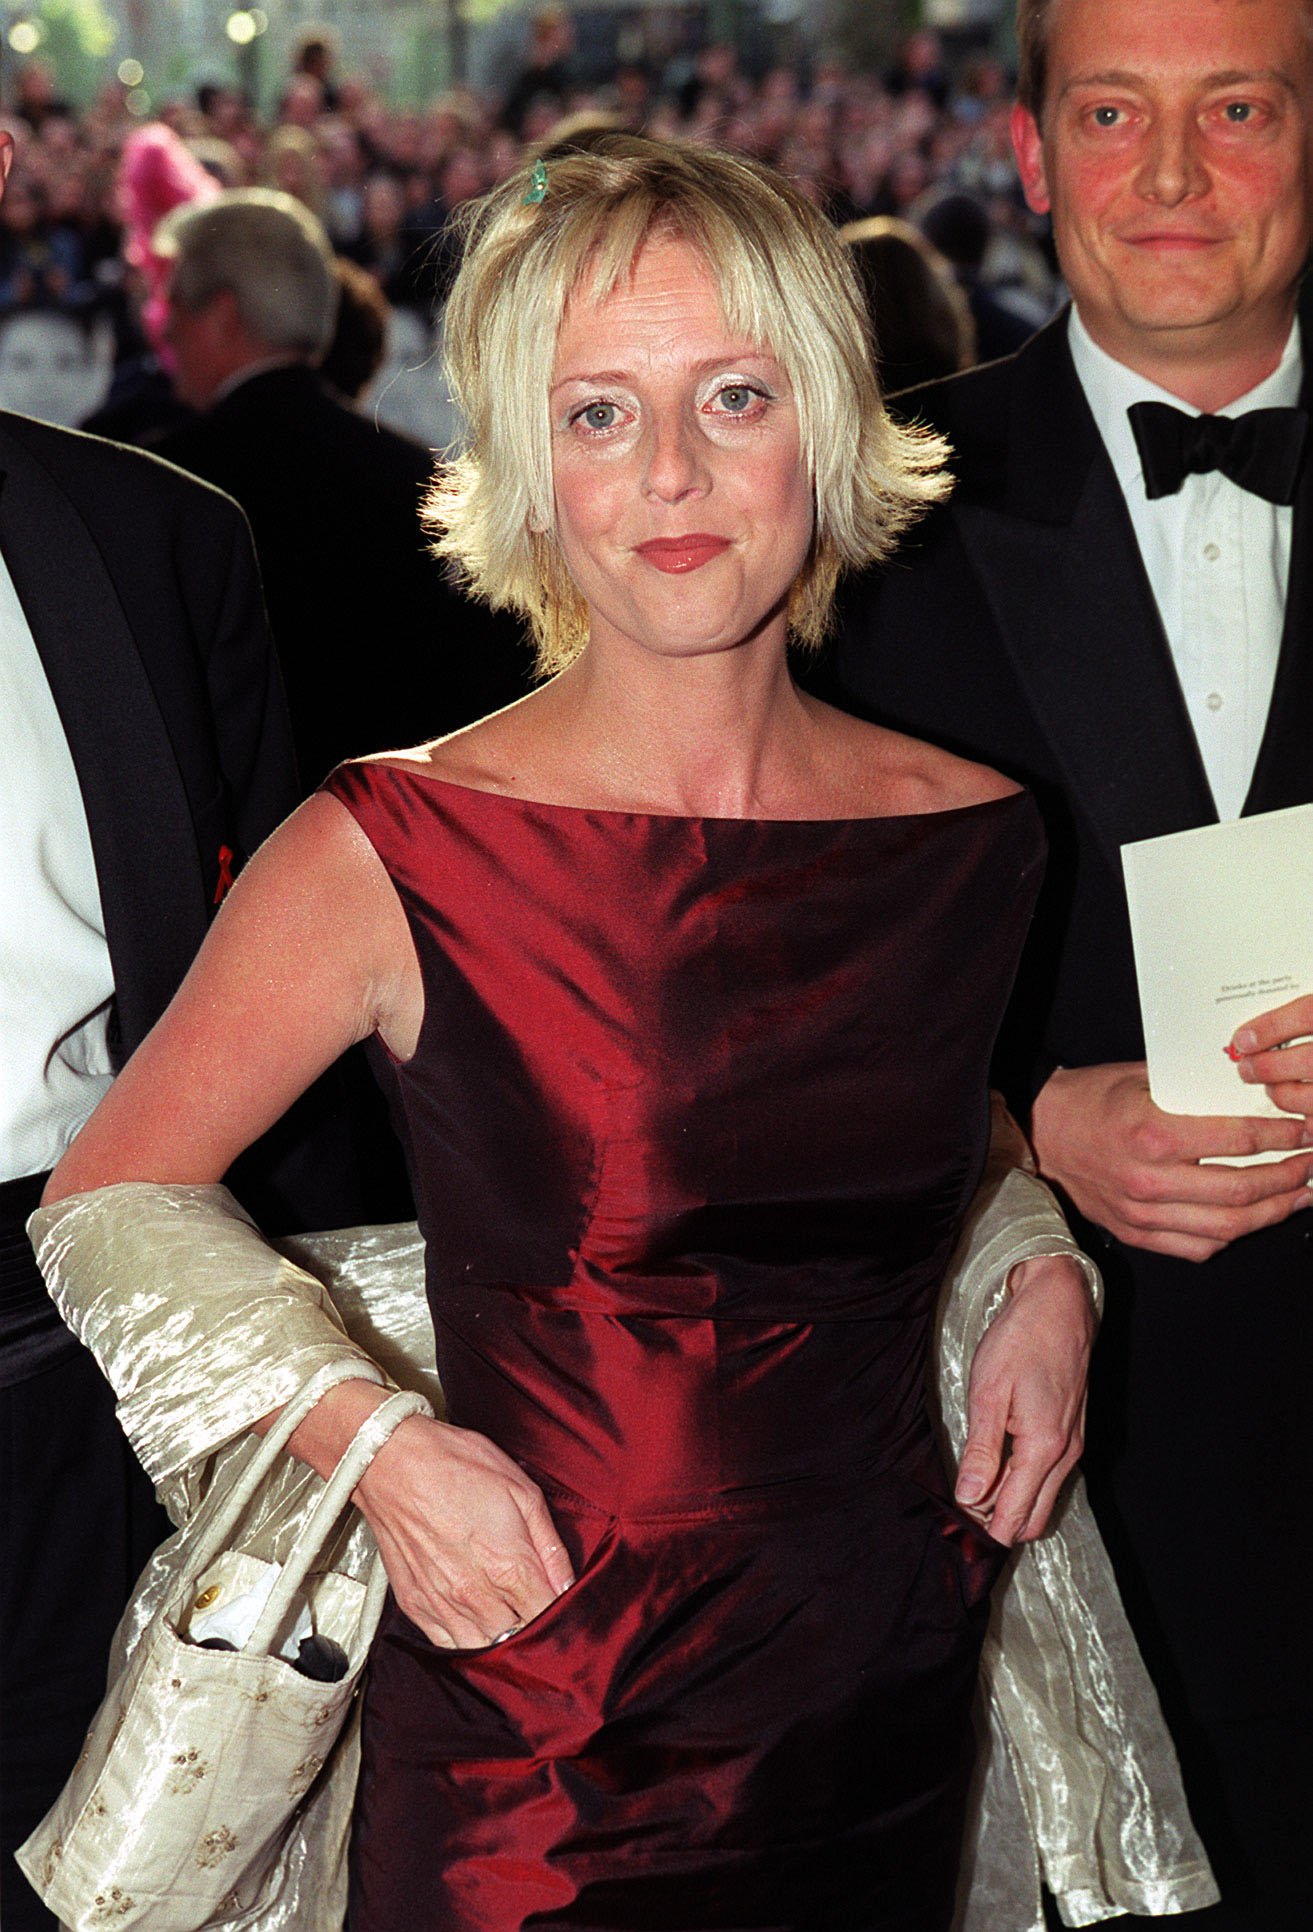 Notting-Hill-Star-Emma-Chambers-Dies-At-53-—-See-Hugh-Grant-More-Stars-Reactions